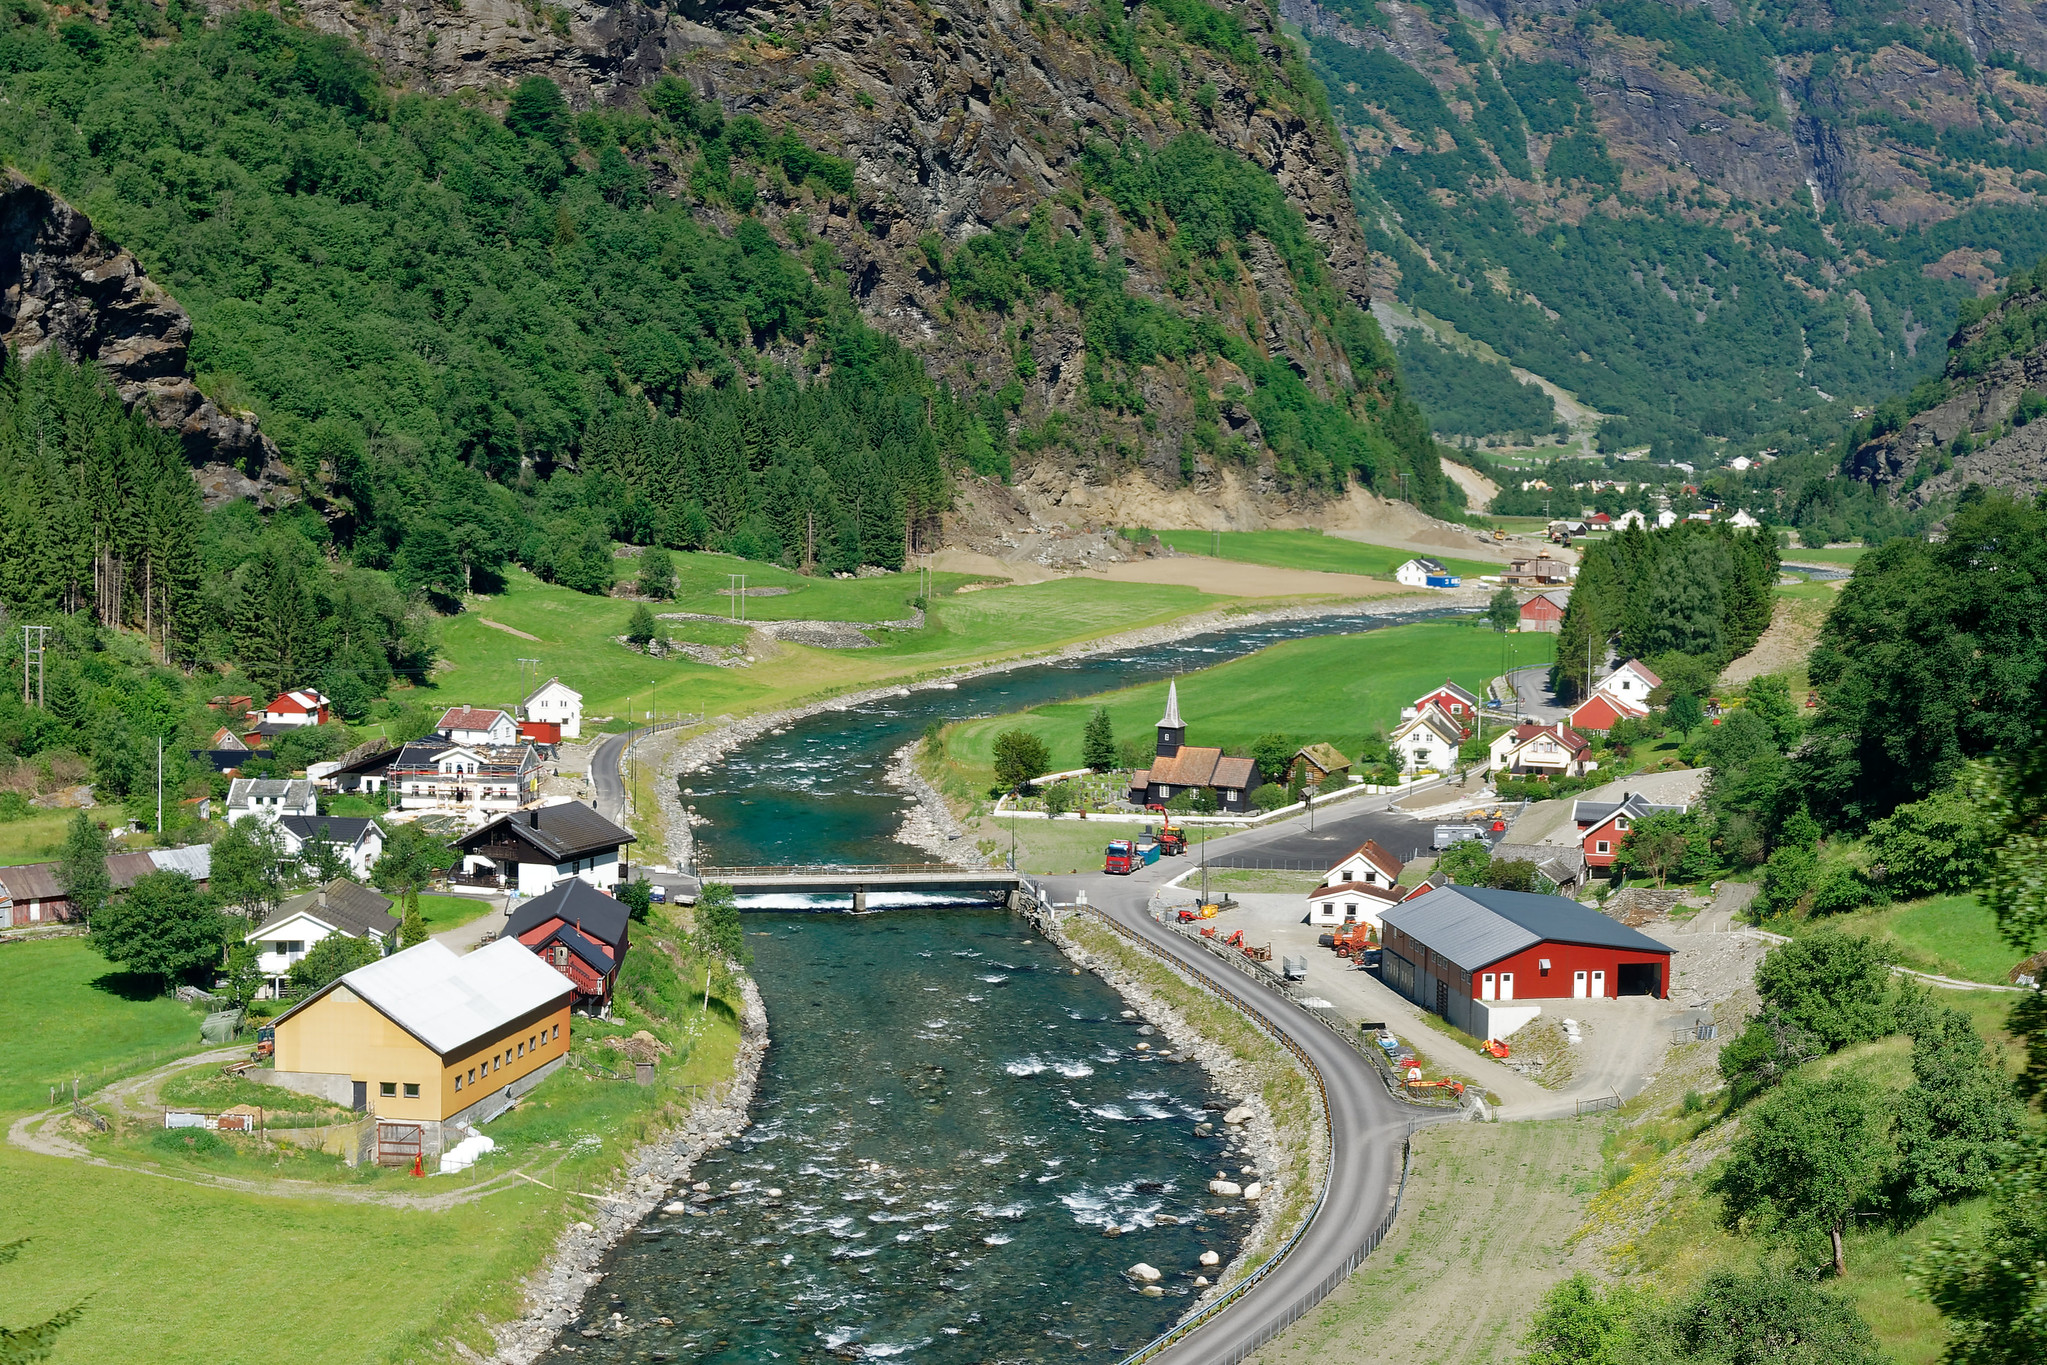 Somewhere near Flam, Norway